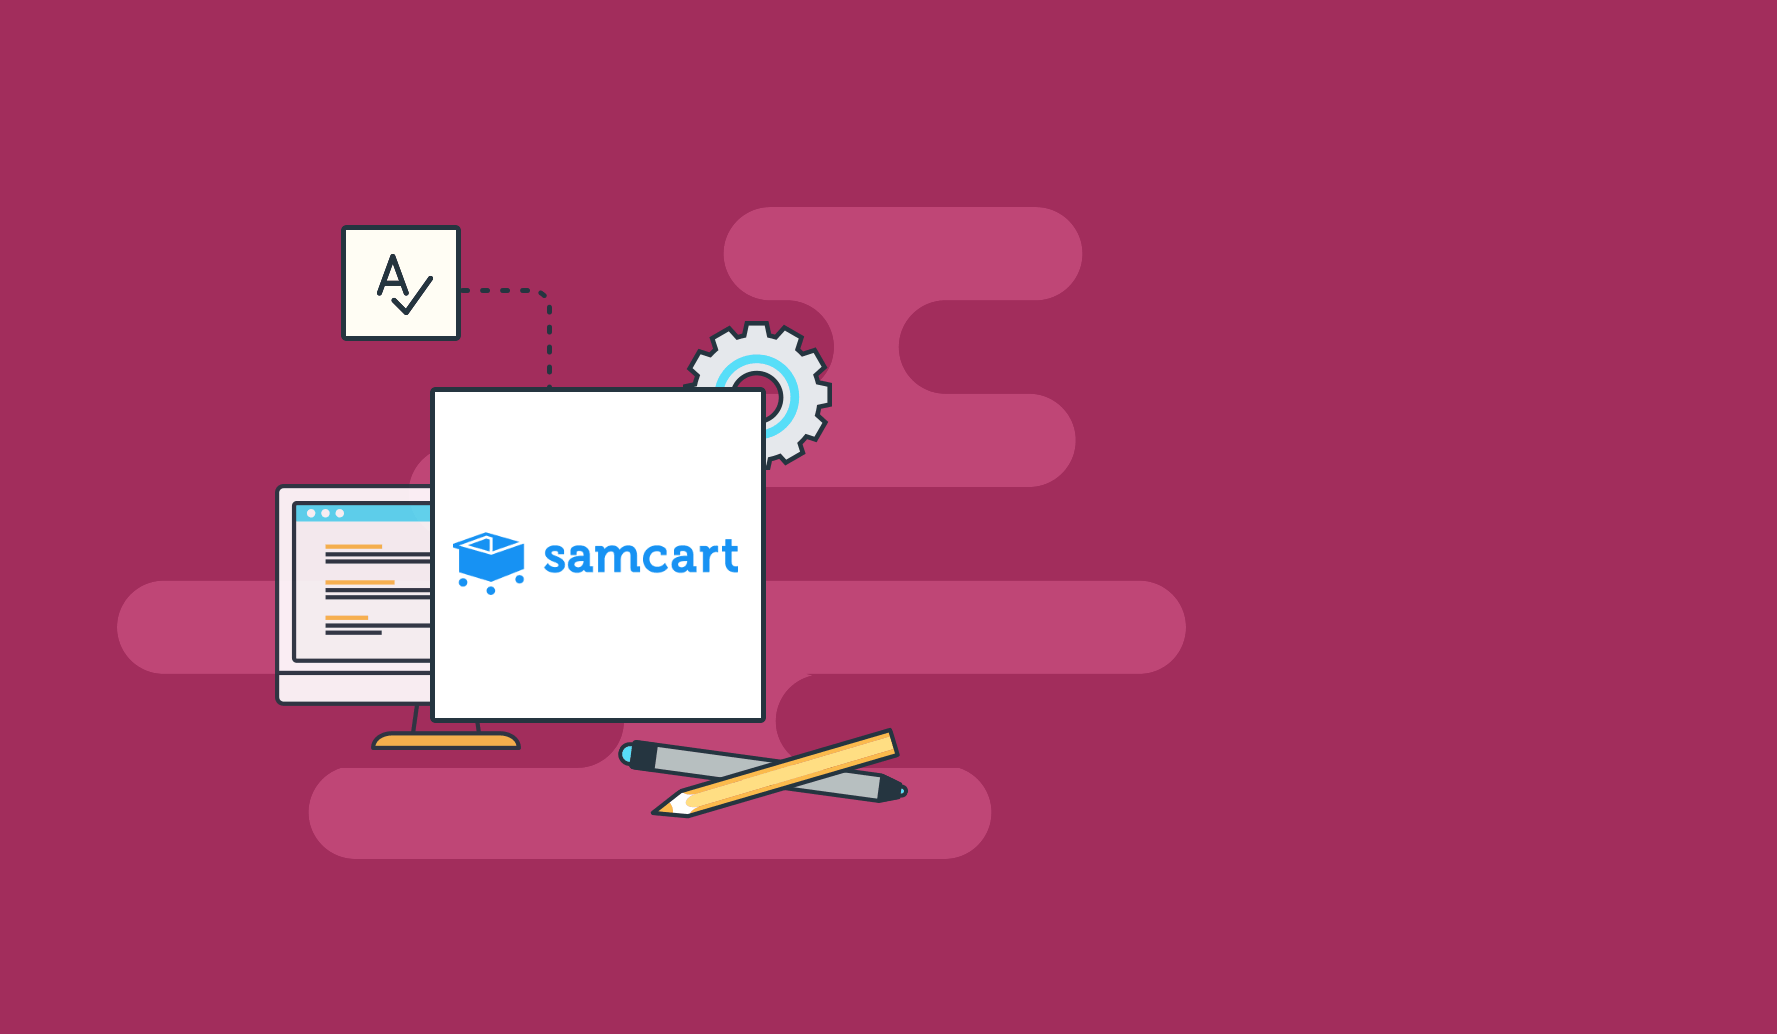 Samcart Landing Page Software For Students